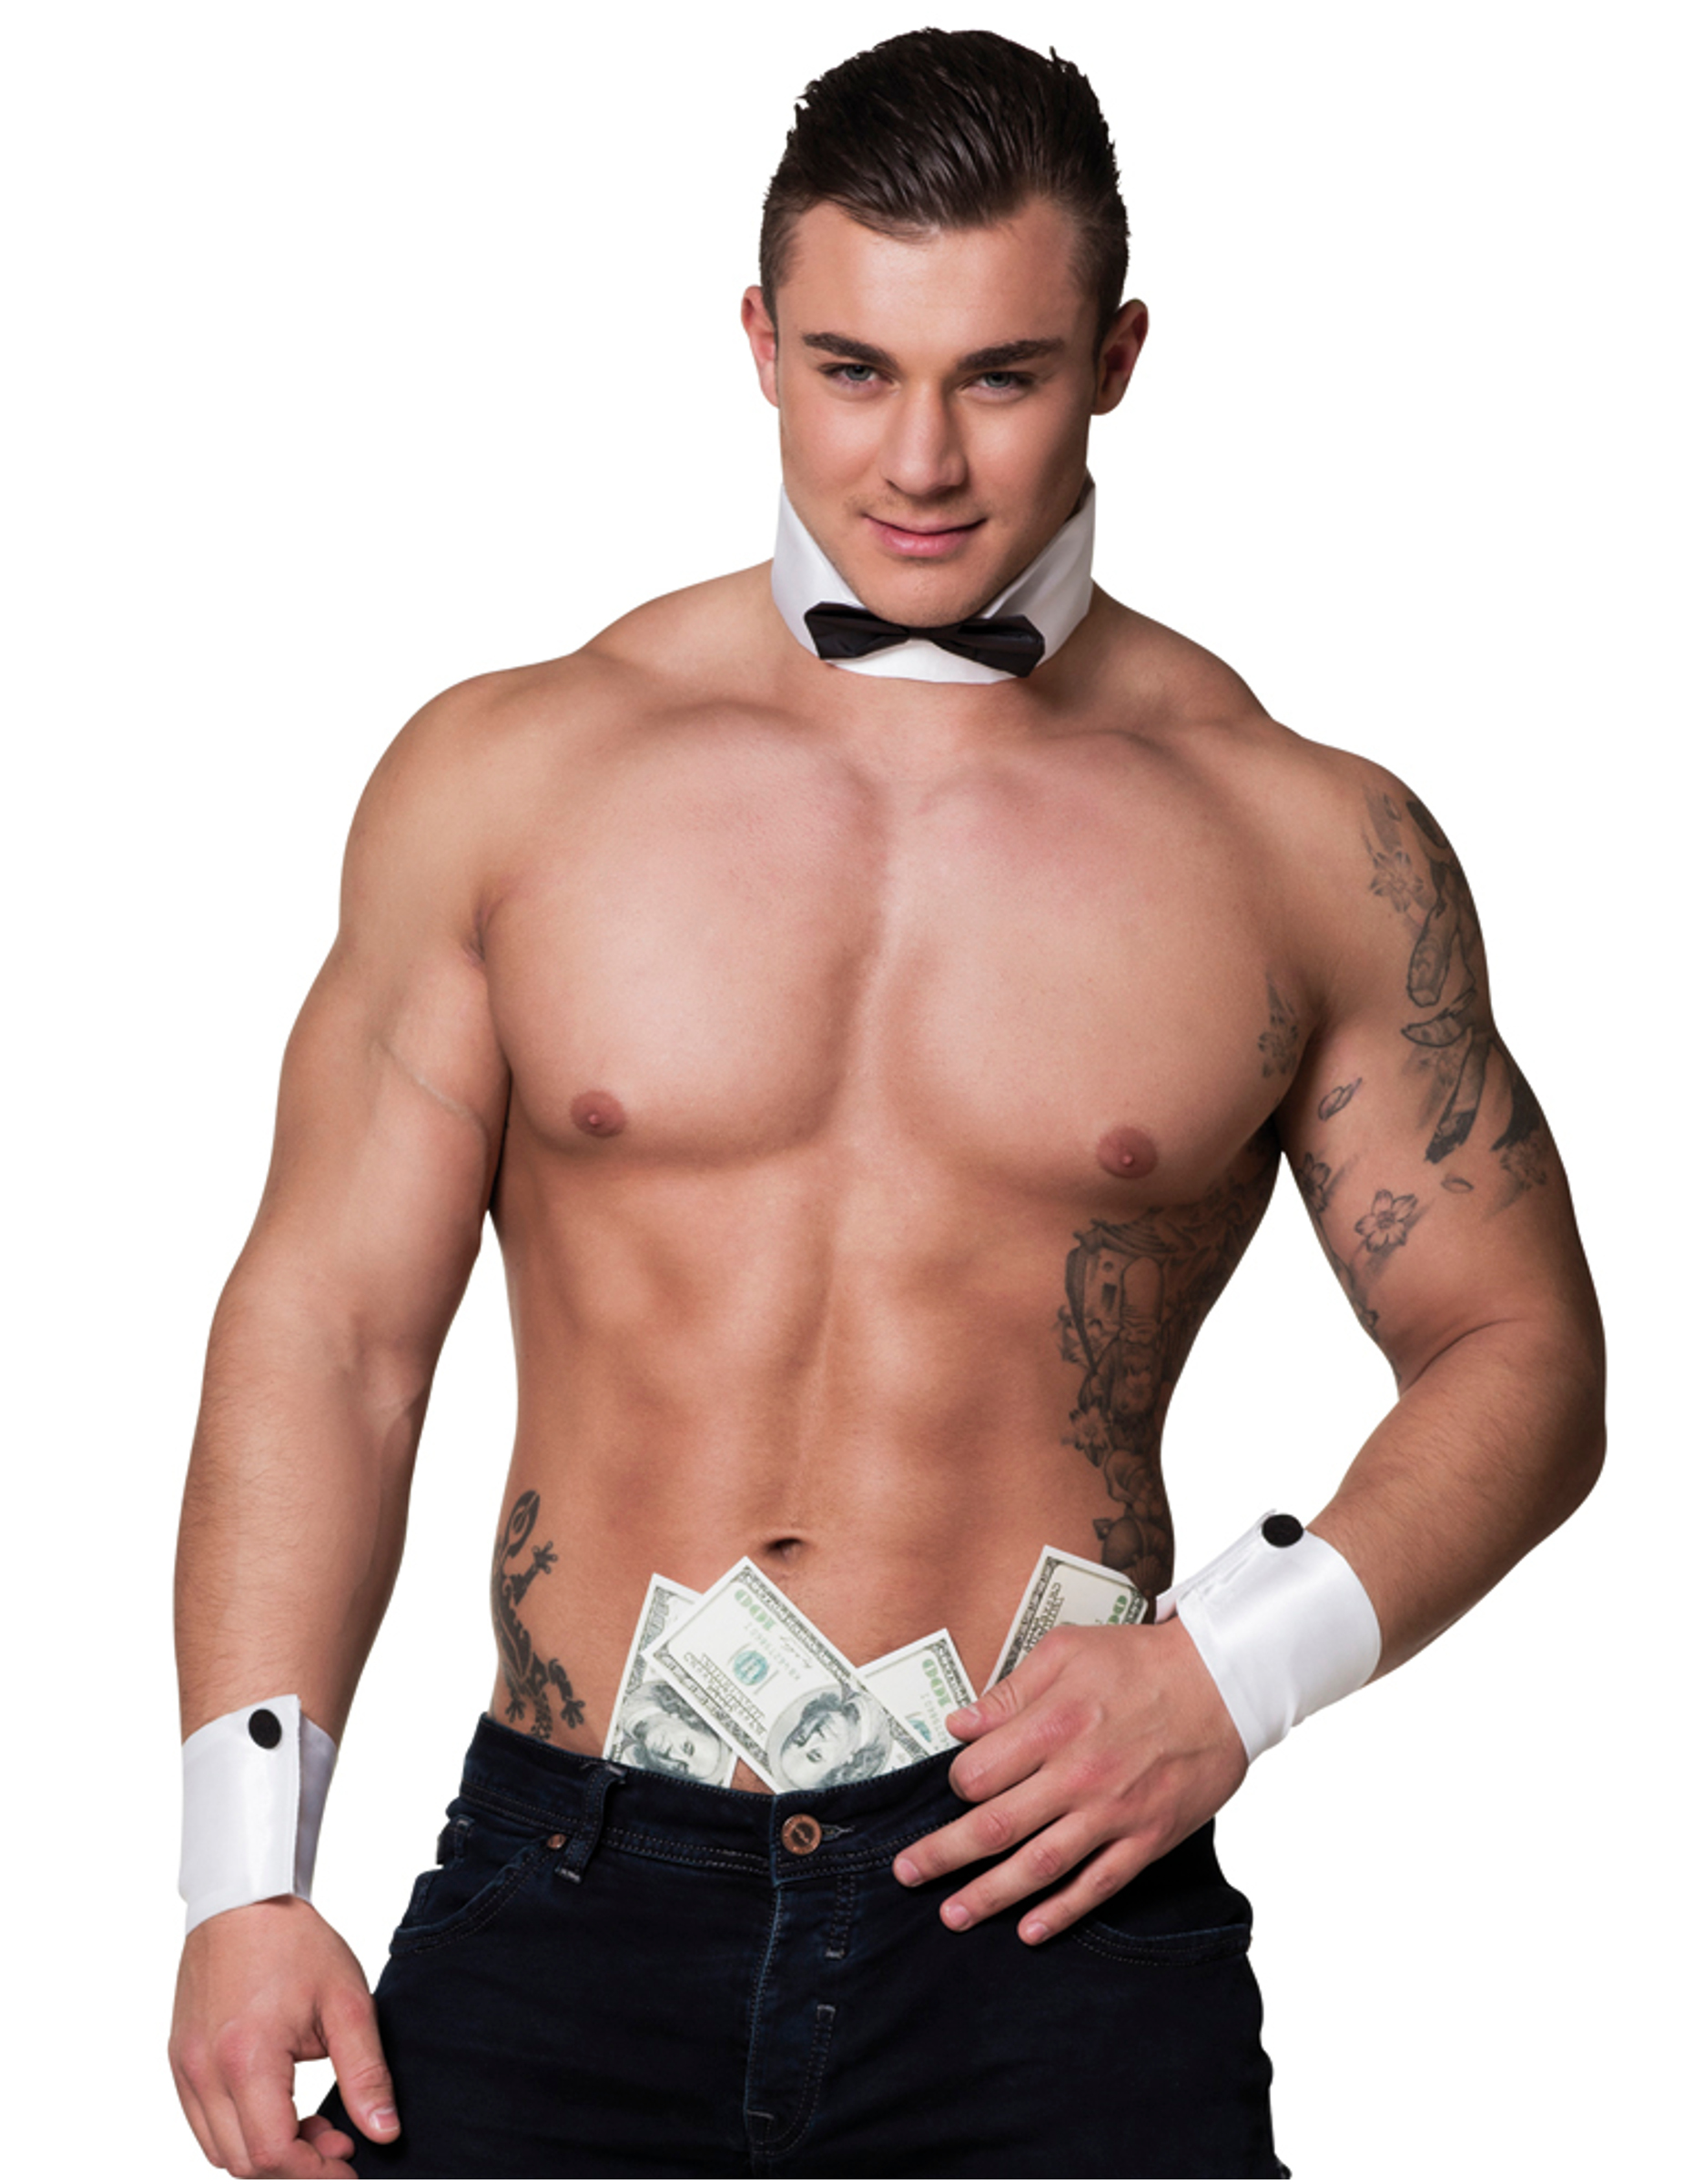 Male stripper in collars and cuffs